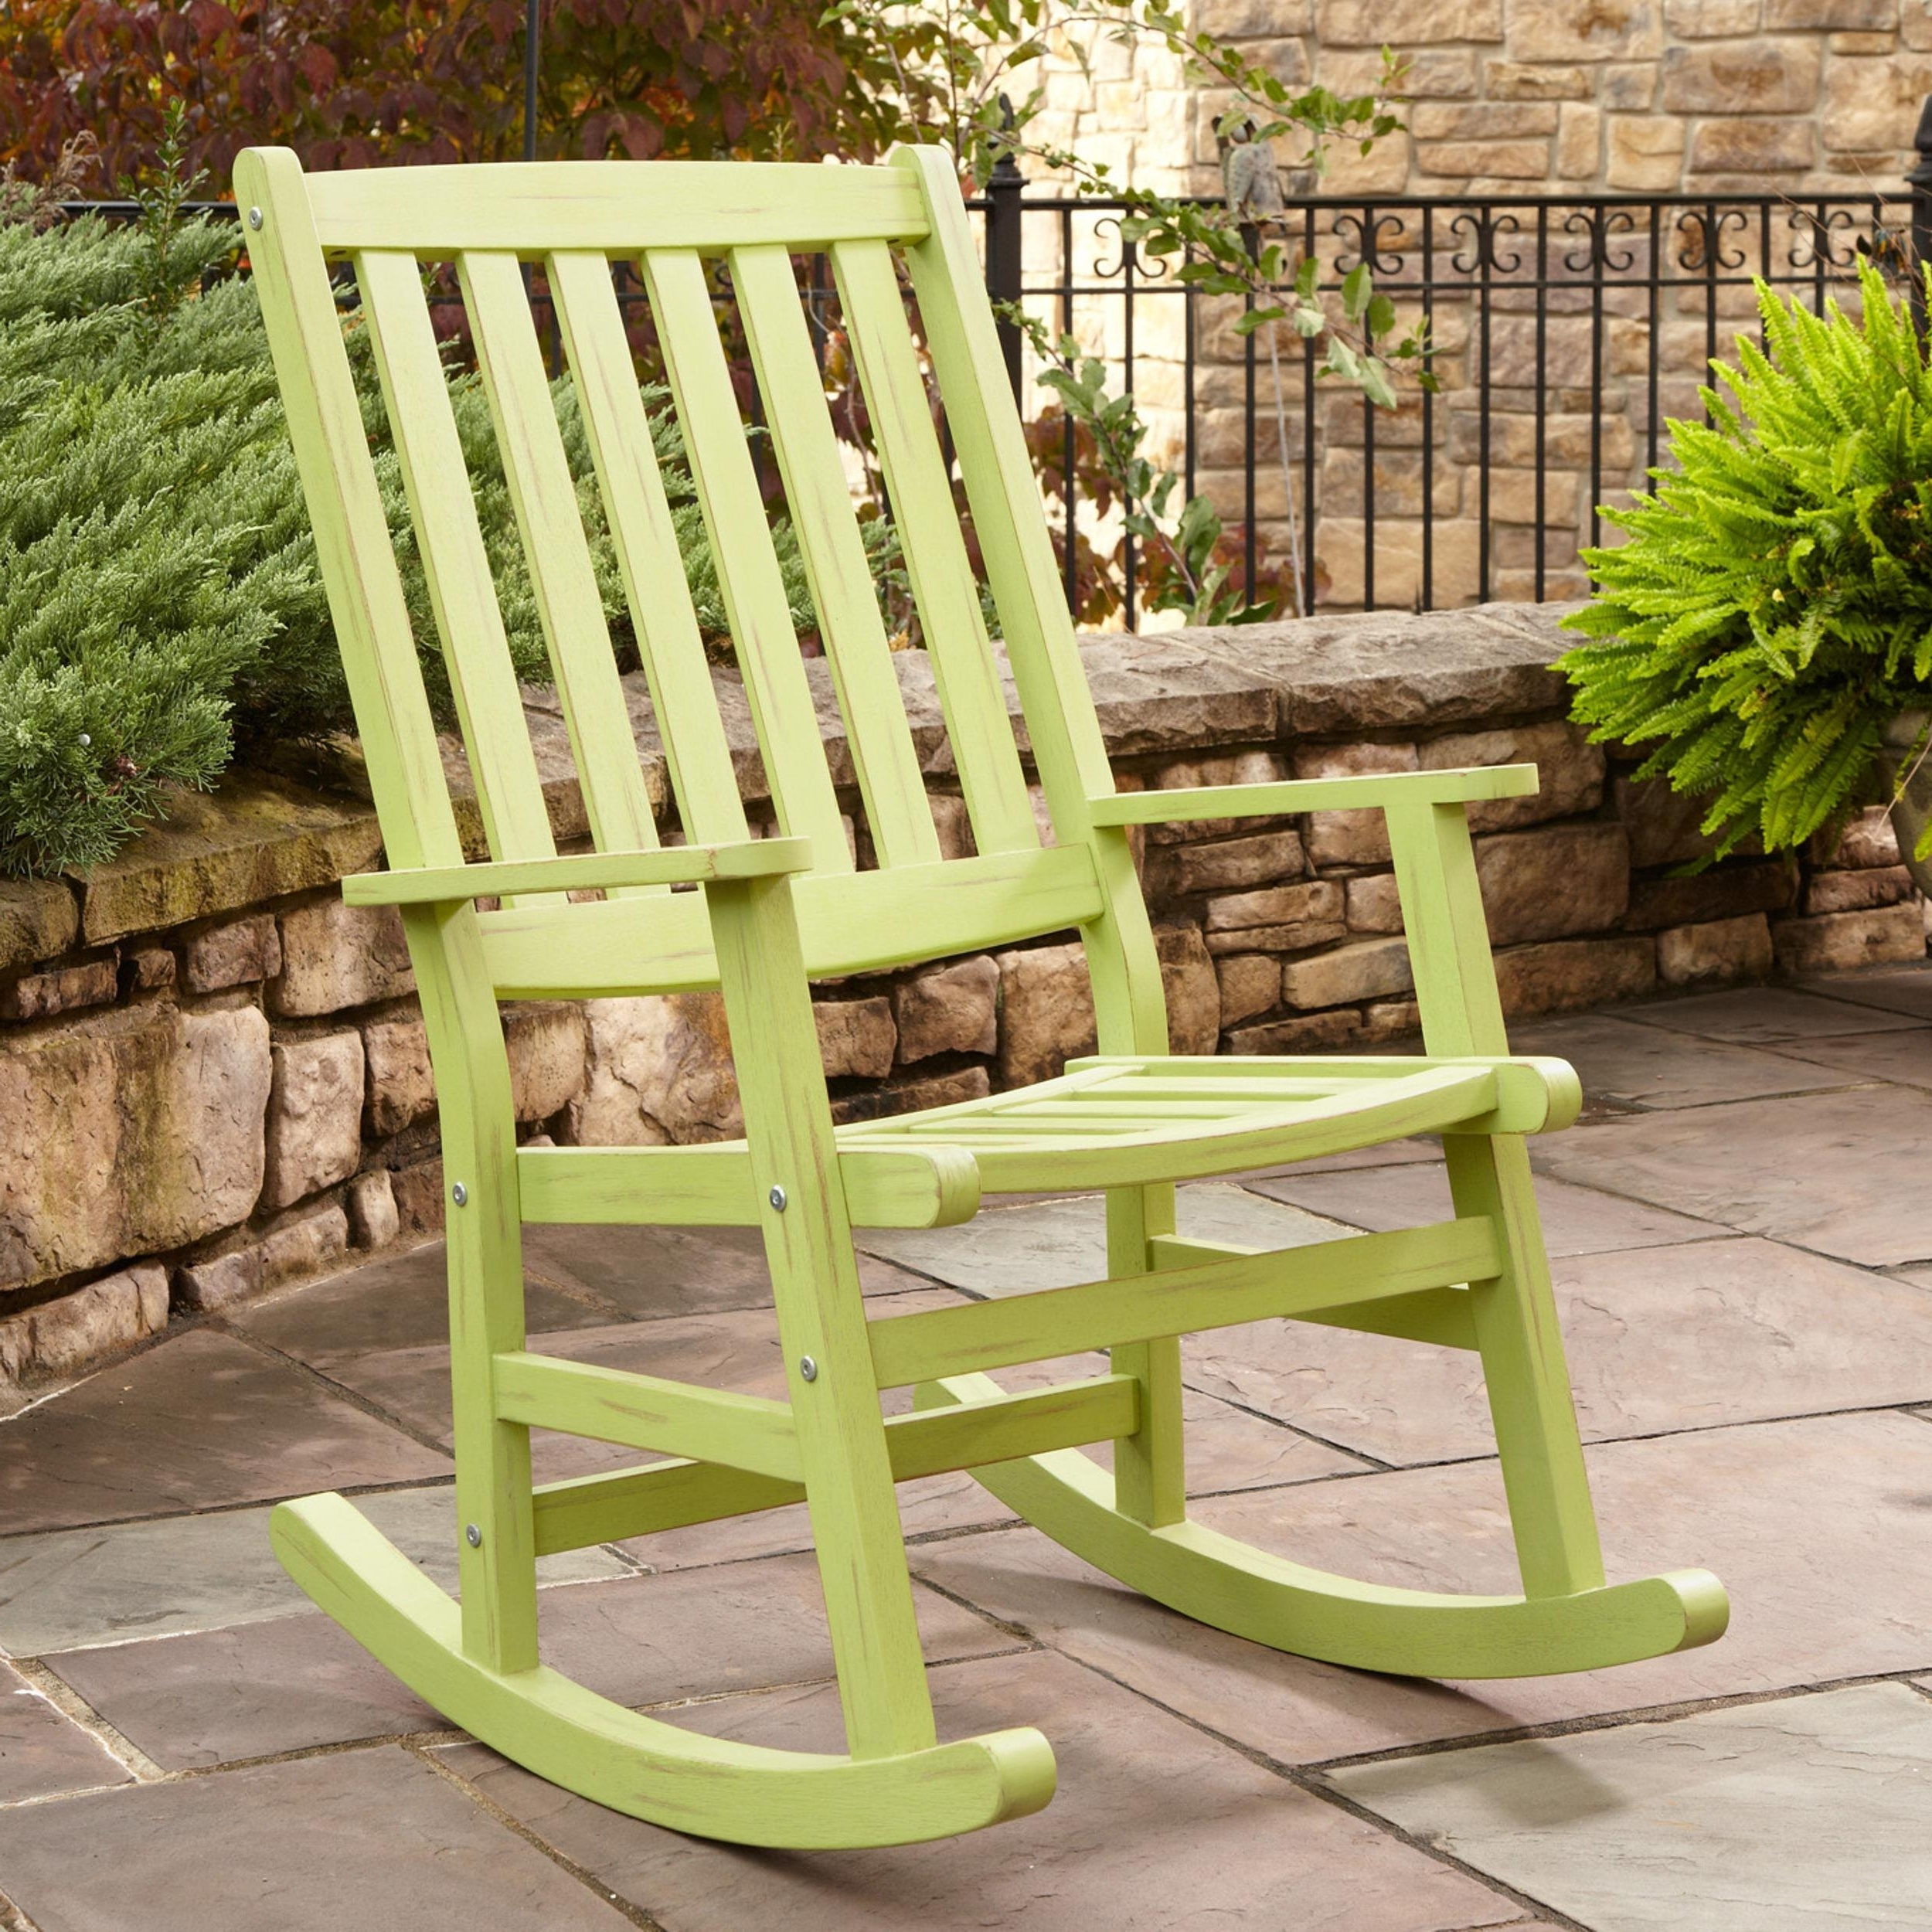 Patio Porch Rocking Chair — Wilson Home Ideas : Vintage Porch Pertaining To 2017 Small Patio Rocking Chairs (View 9 of 15)